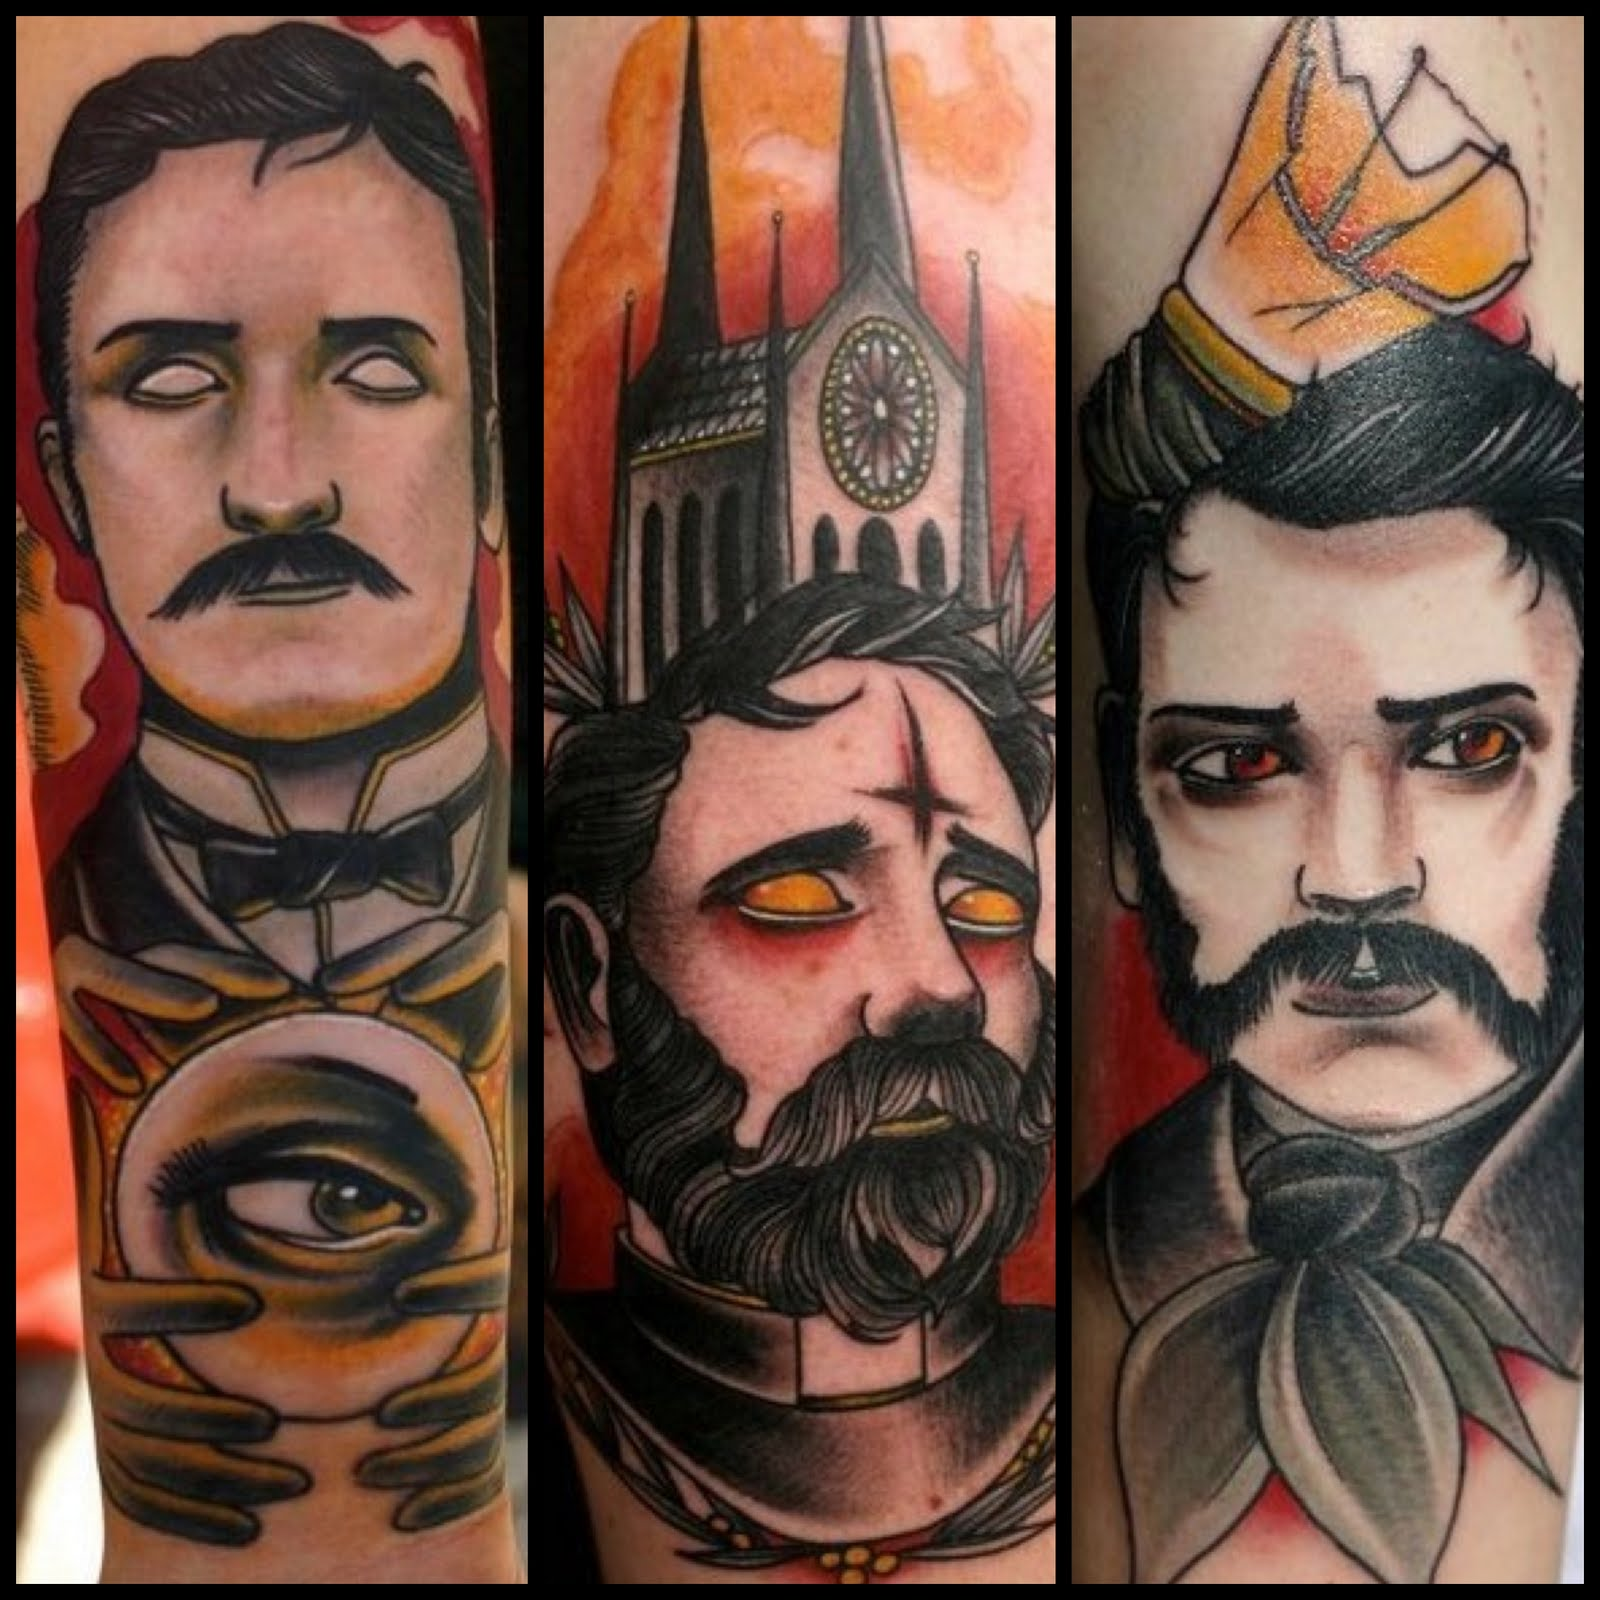 Goblet Tattoo On Forearm By Joe Ellis: Hail To The FrEaKs: Whats Coming Up In The World Of The